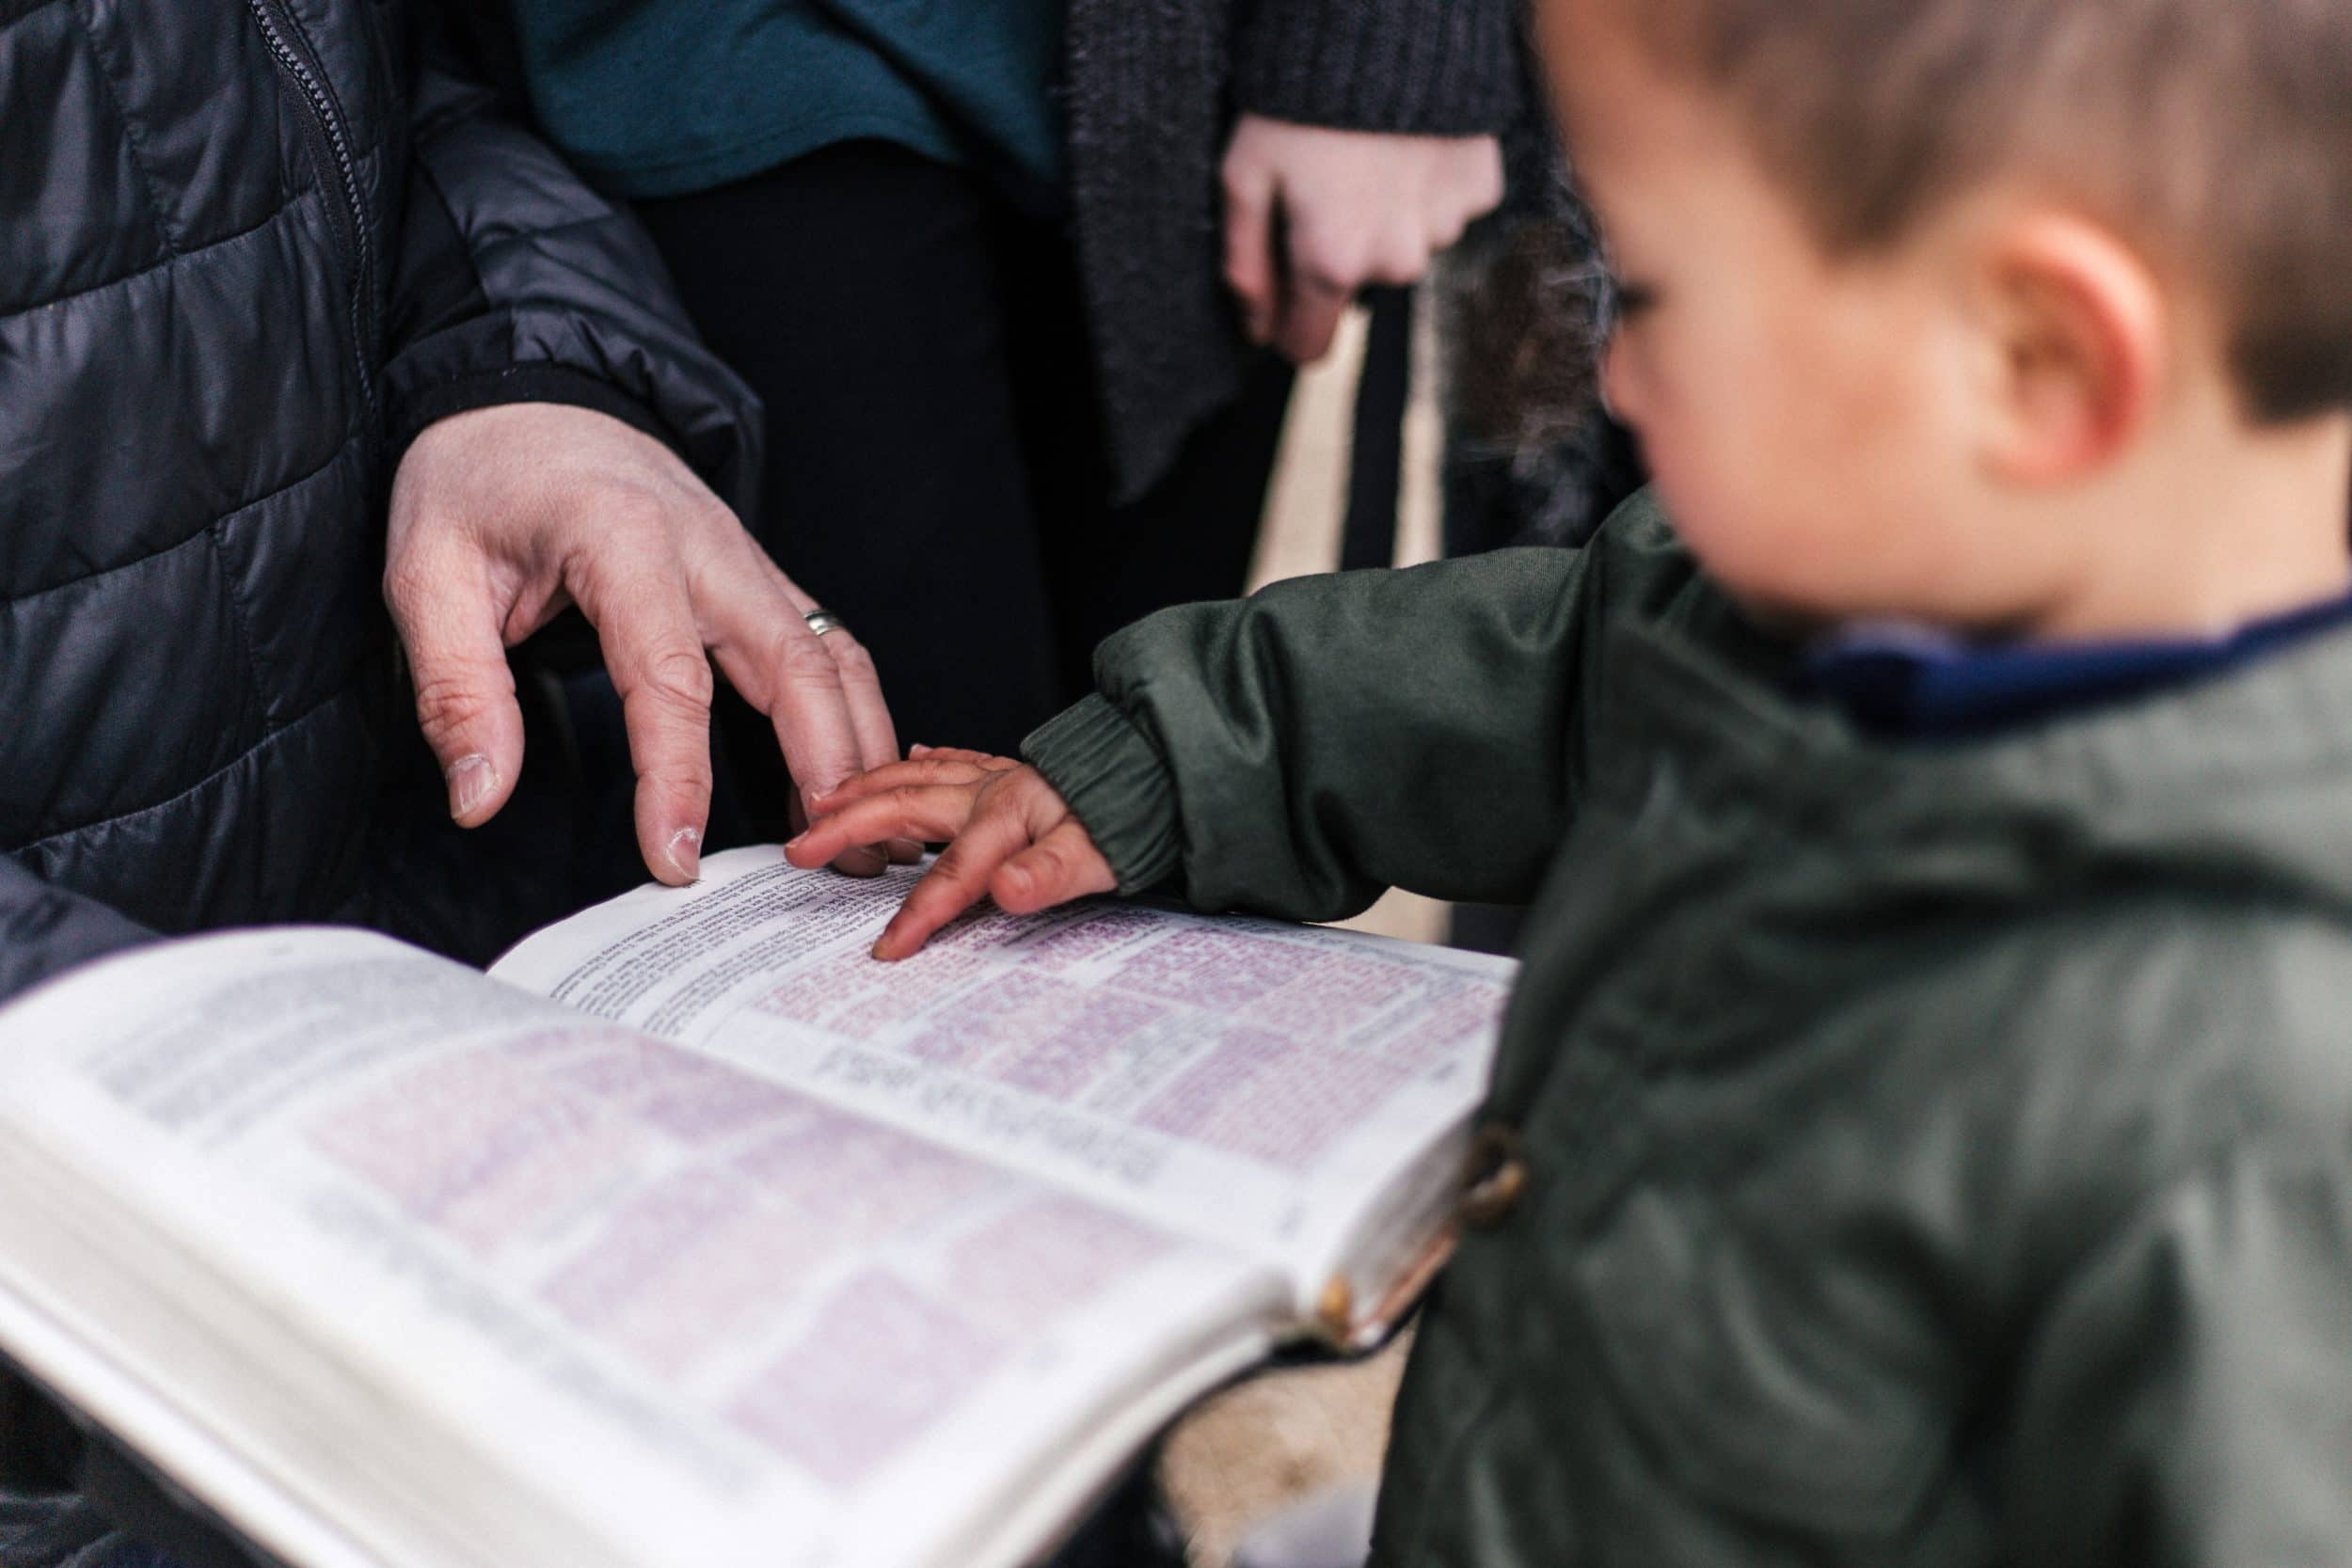 CHILD RESPONSIBILITY AND DISCERNMENT